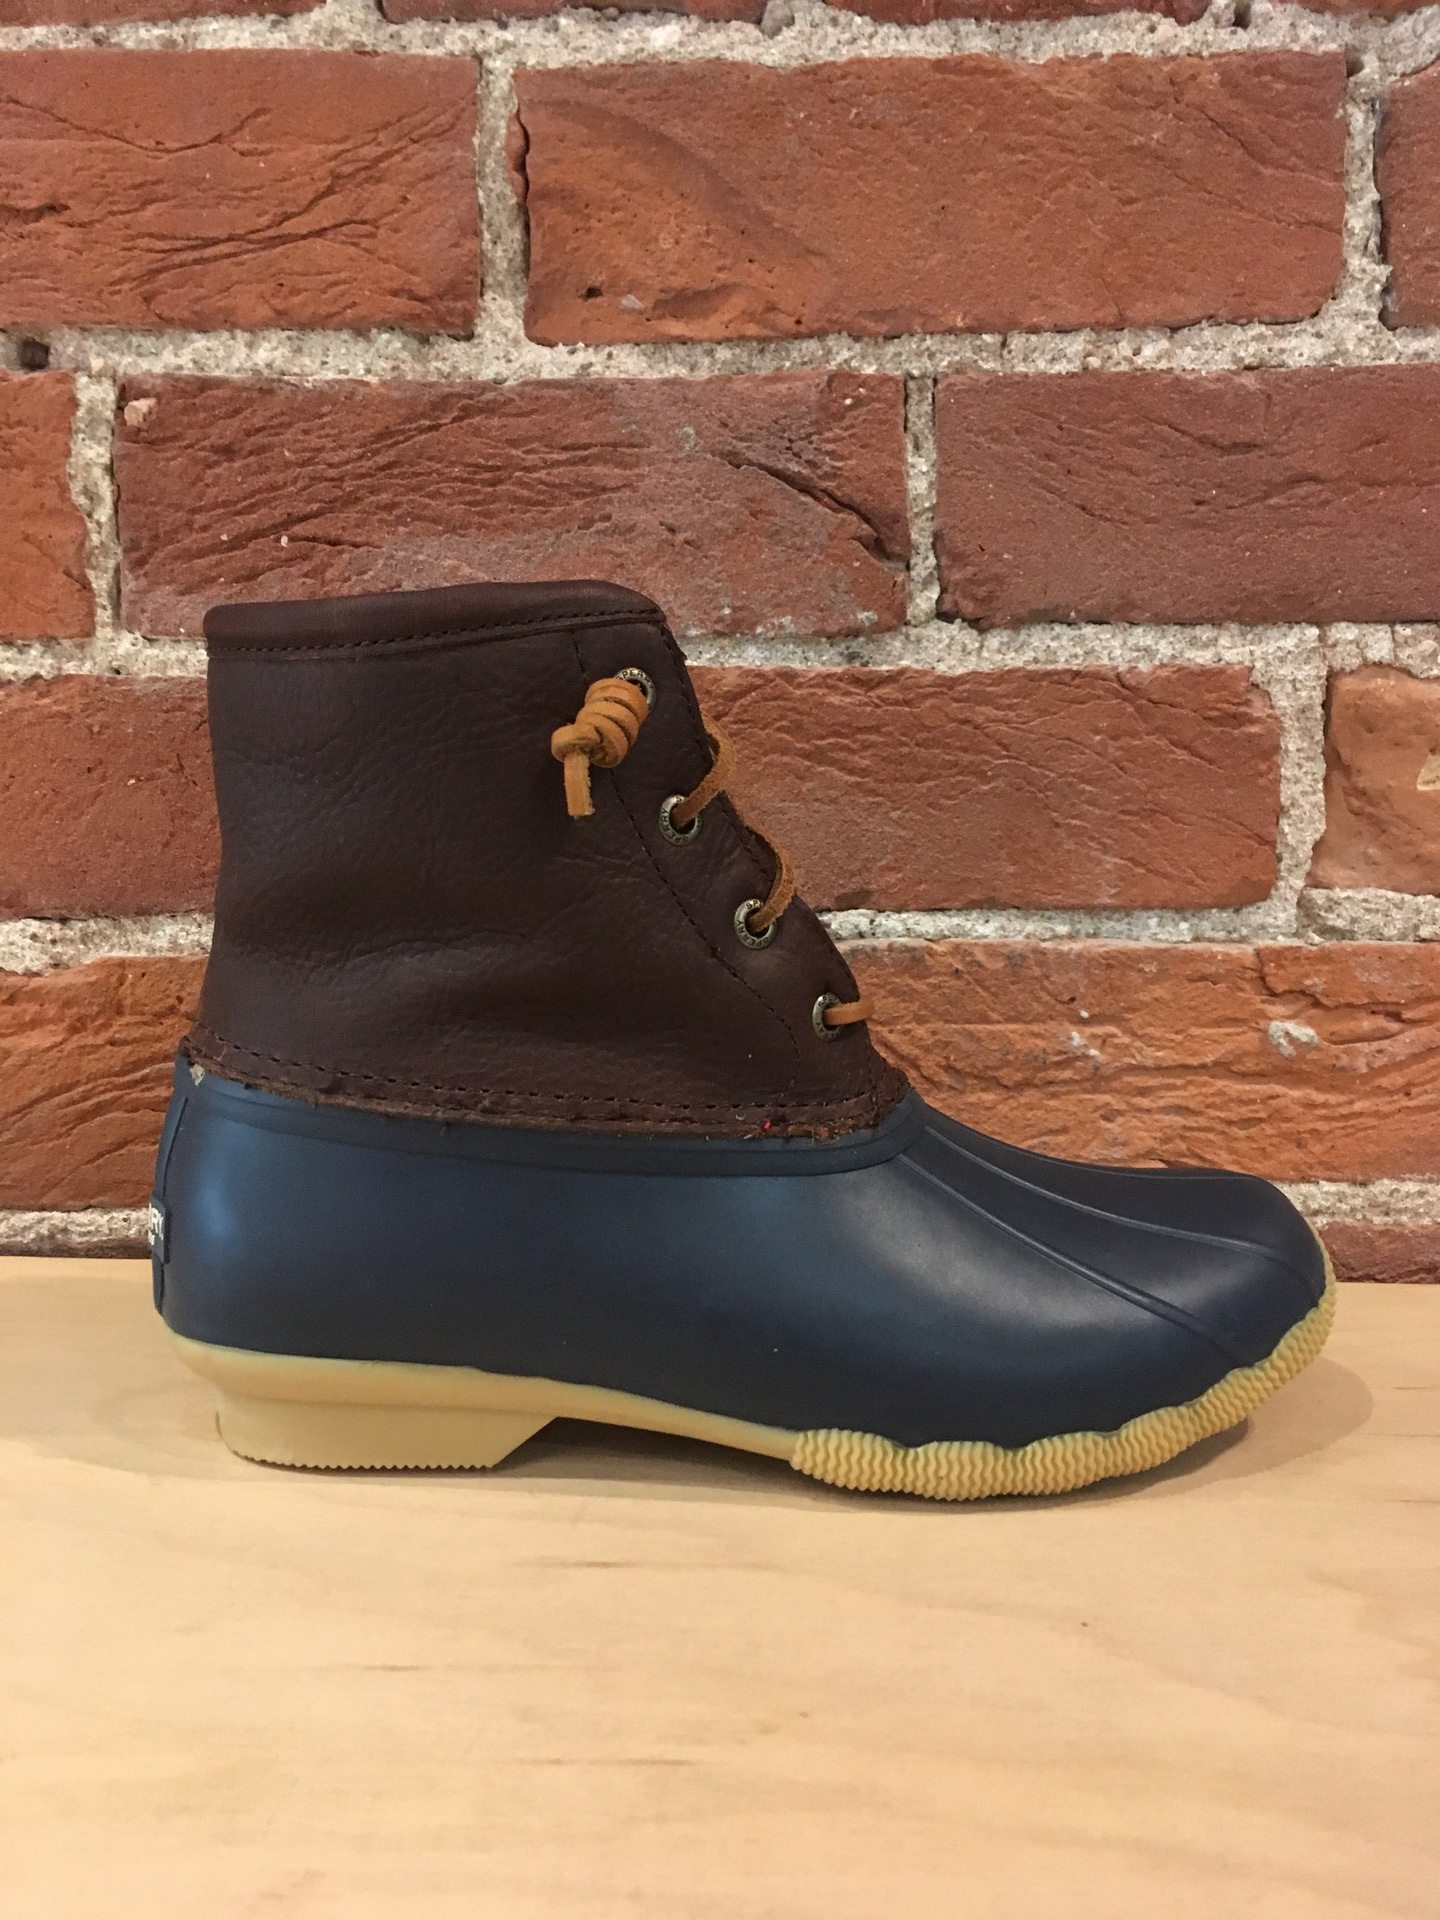 SPERRY - SALTWATER DUCK BOOT WITH THINSULATE IN NAVY